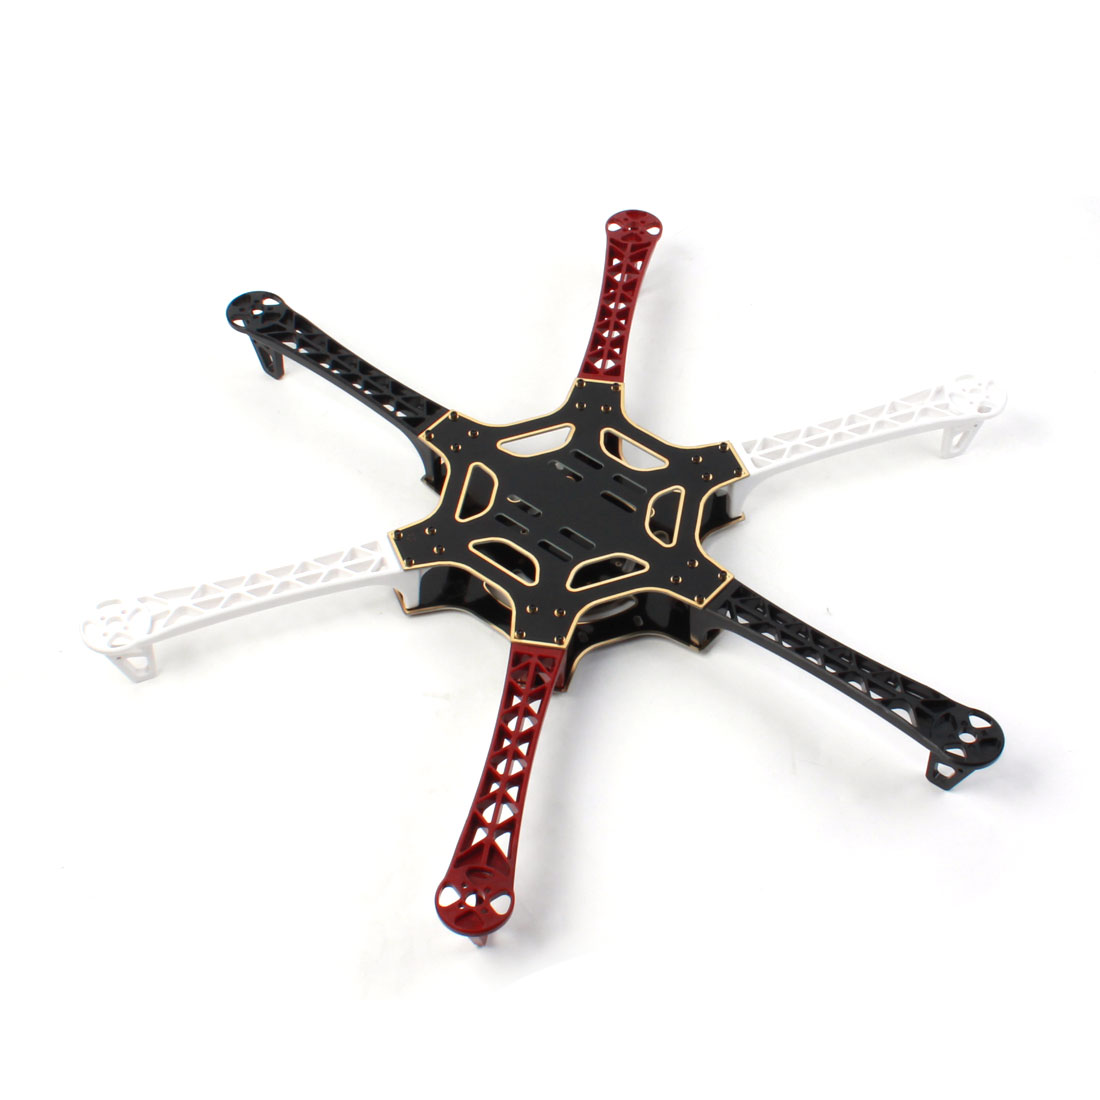 Replacement 22cm Metal Plates 6-Axis Multirotor Frame Airframe Set for HJ550 RC Hexacopter